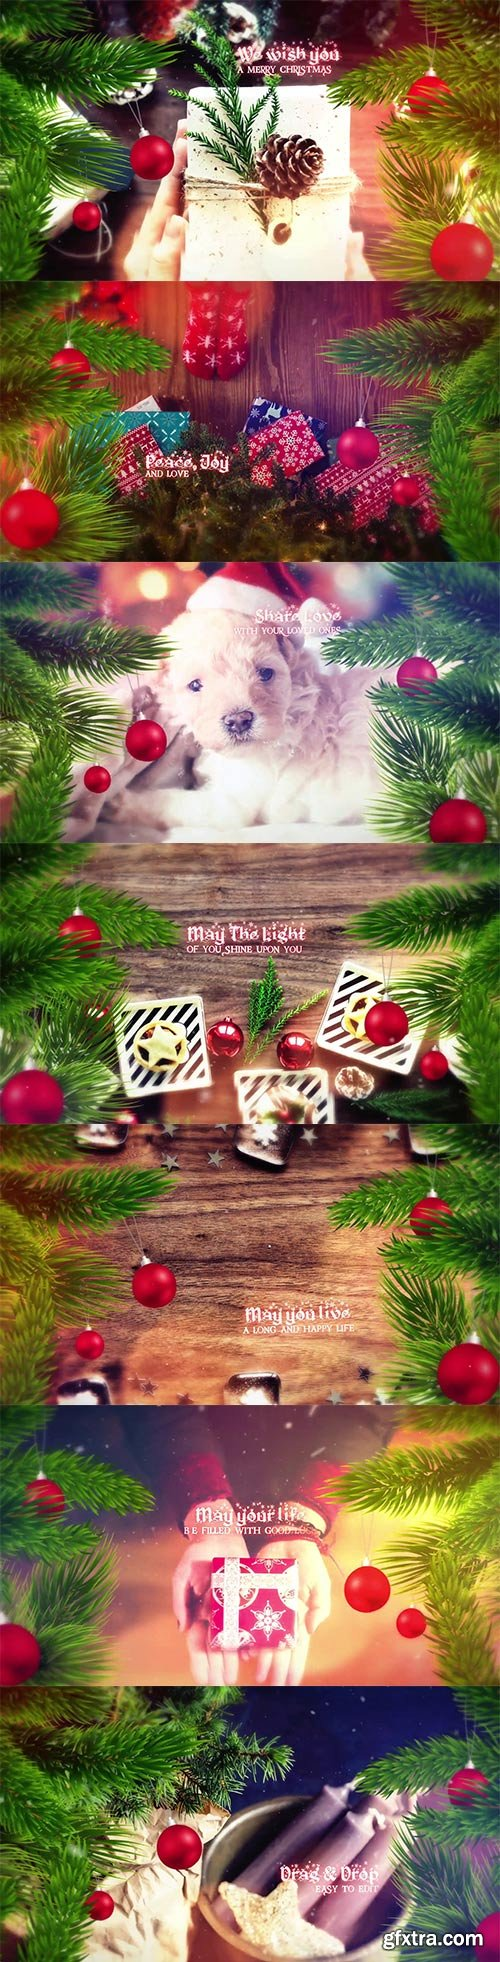 Videohive - Christmas Slideshow - 22832058